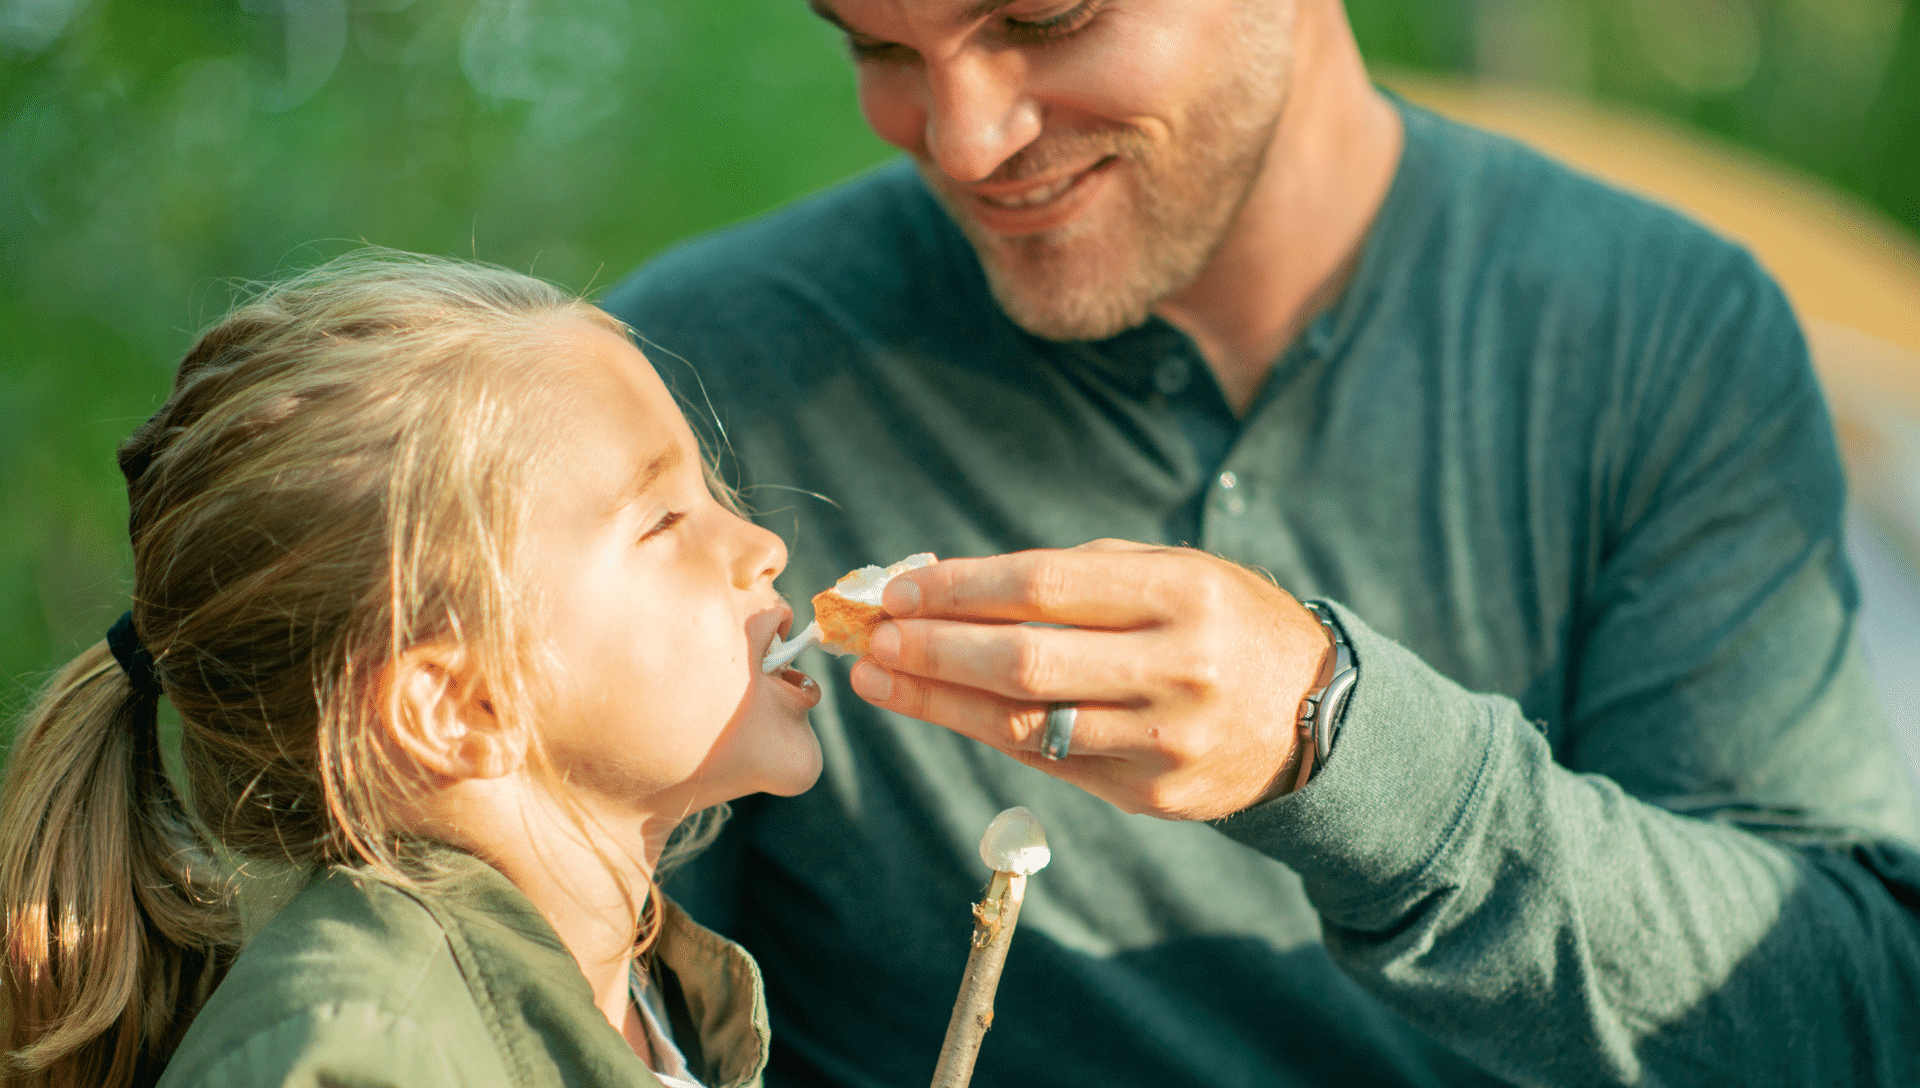 While camping, a father holds a roasted marshmallow while his daughter takes a bite of the gooey marshmallow she just roasted.